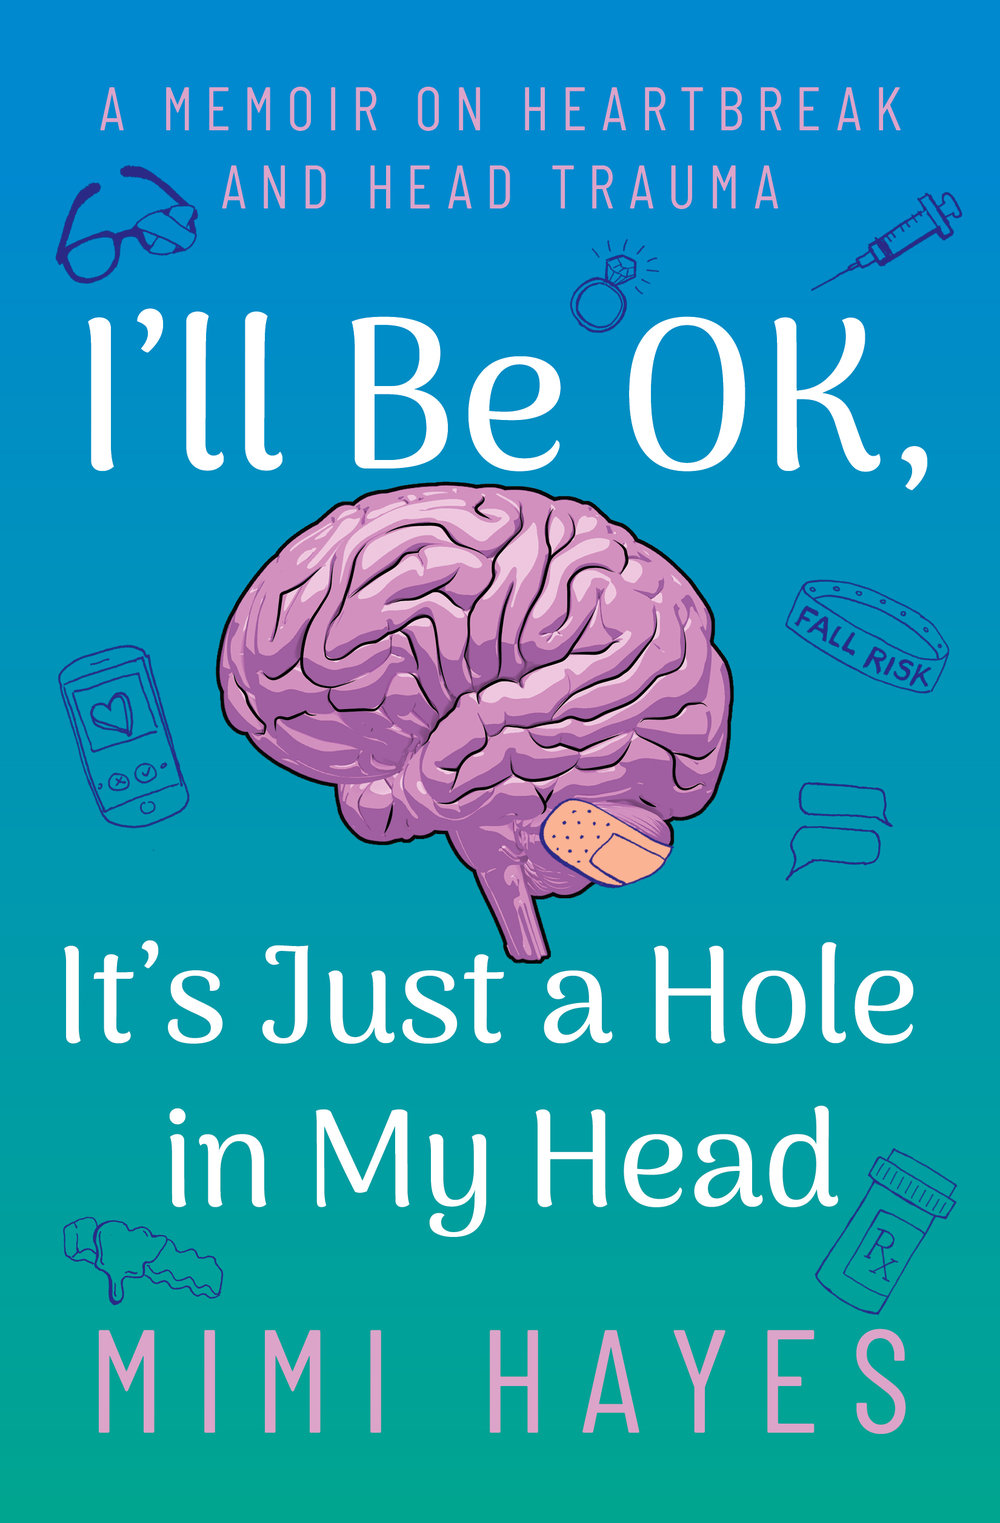 - I'll Be OK, It's Just a Hole in My Head (A Memoir On Heartbreak and Head Trauma)Published by Animal Media Group, 2018